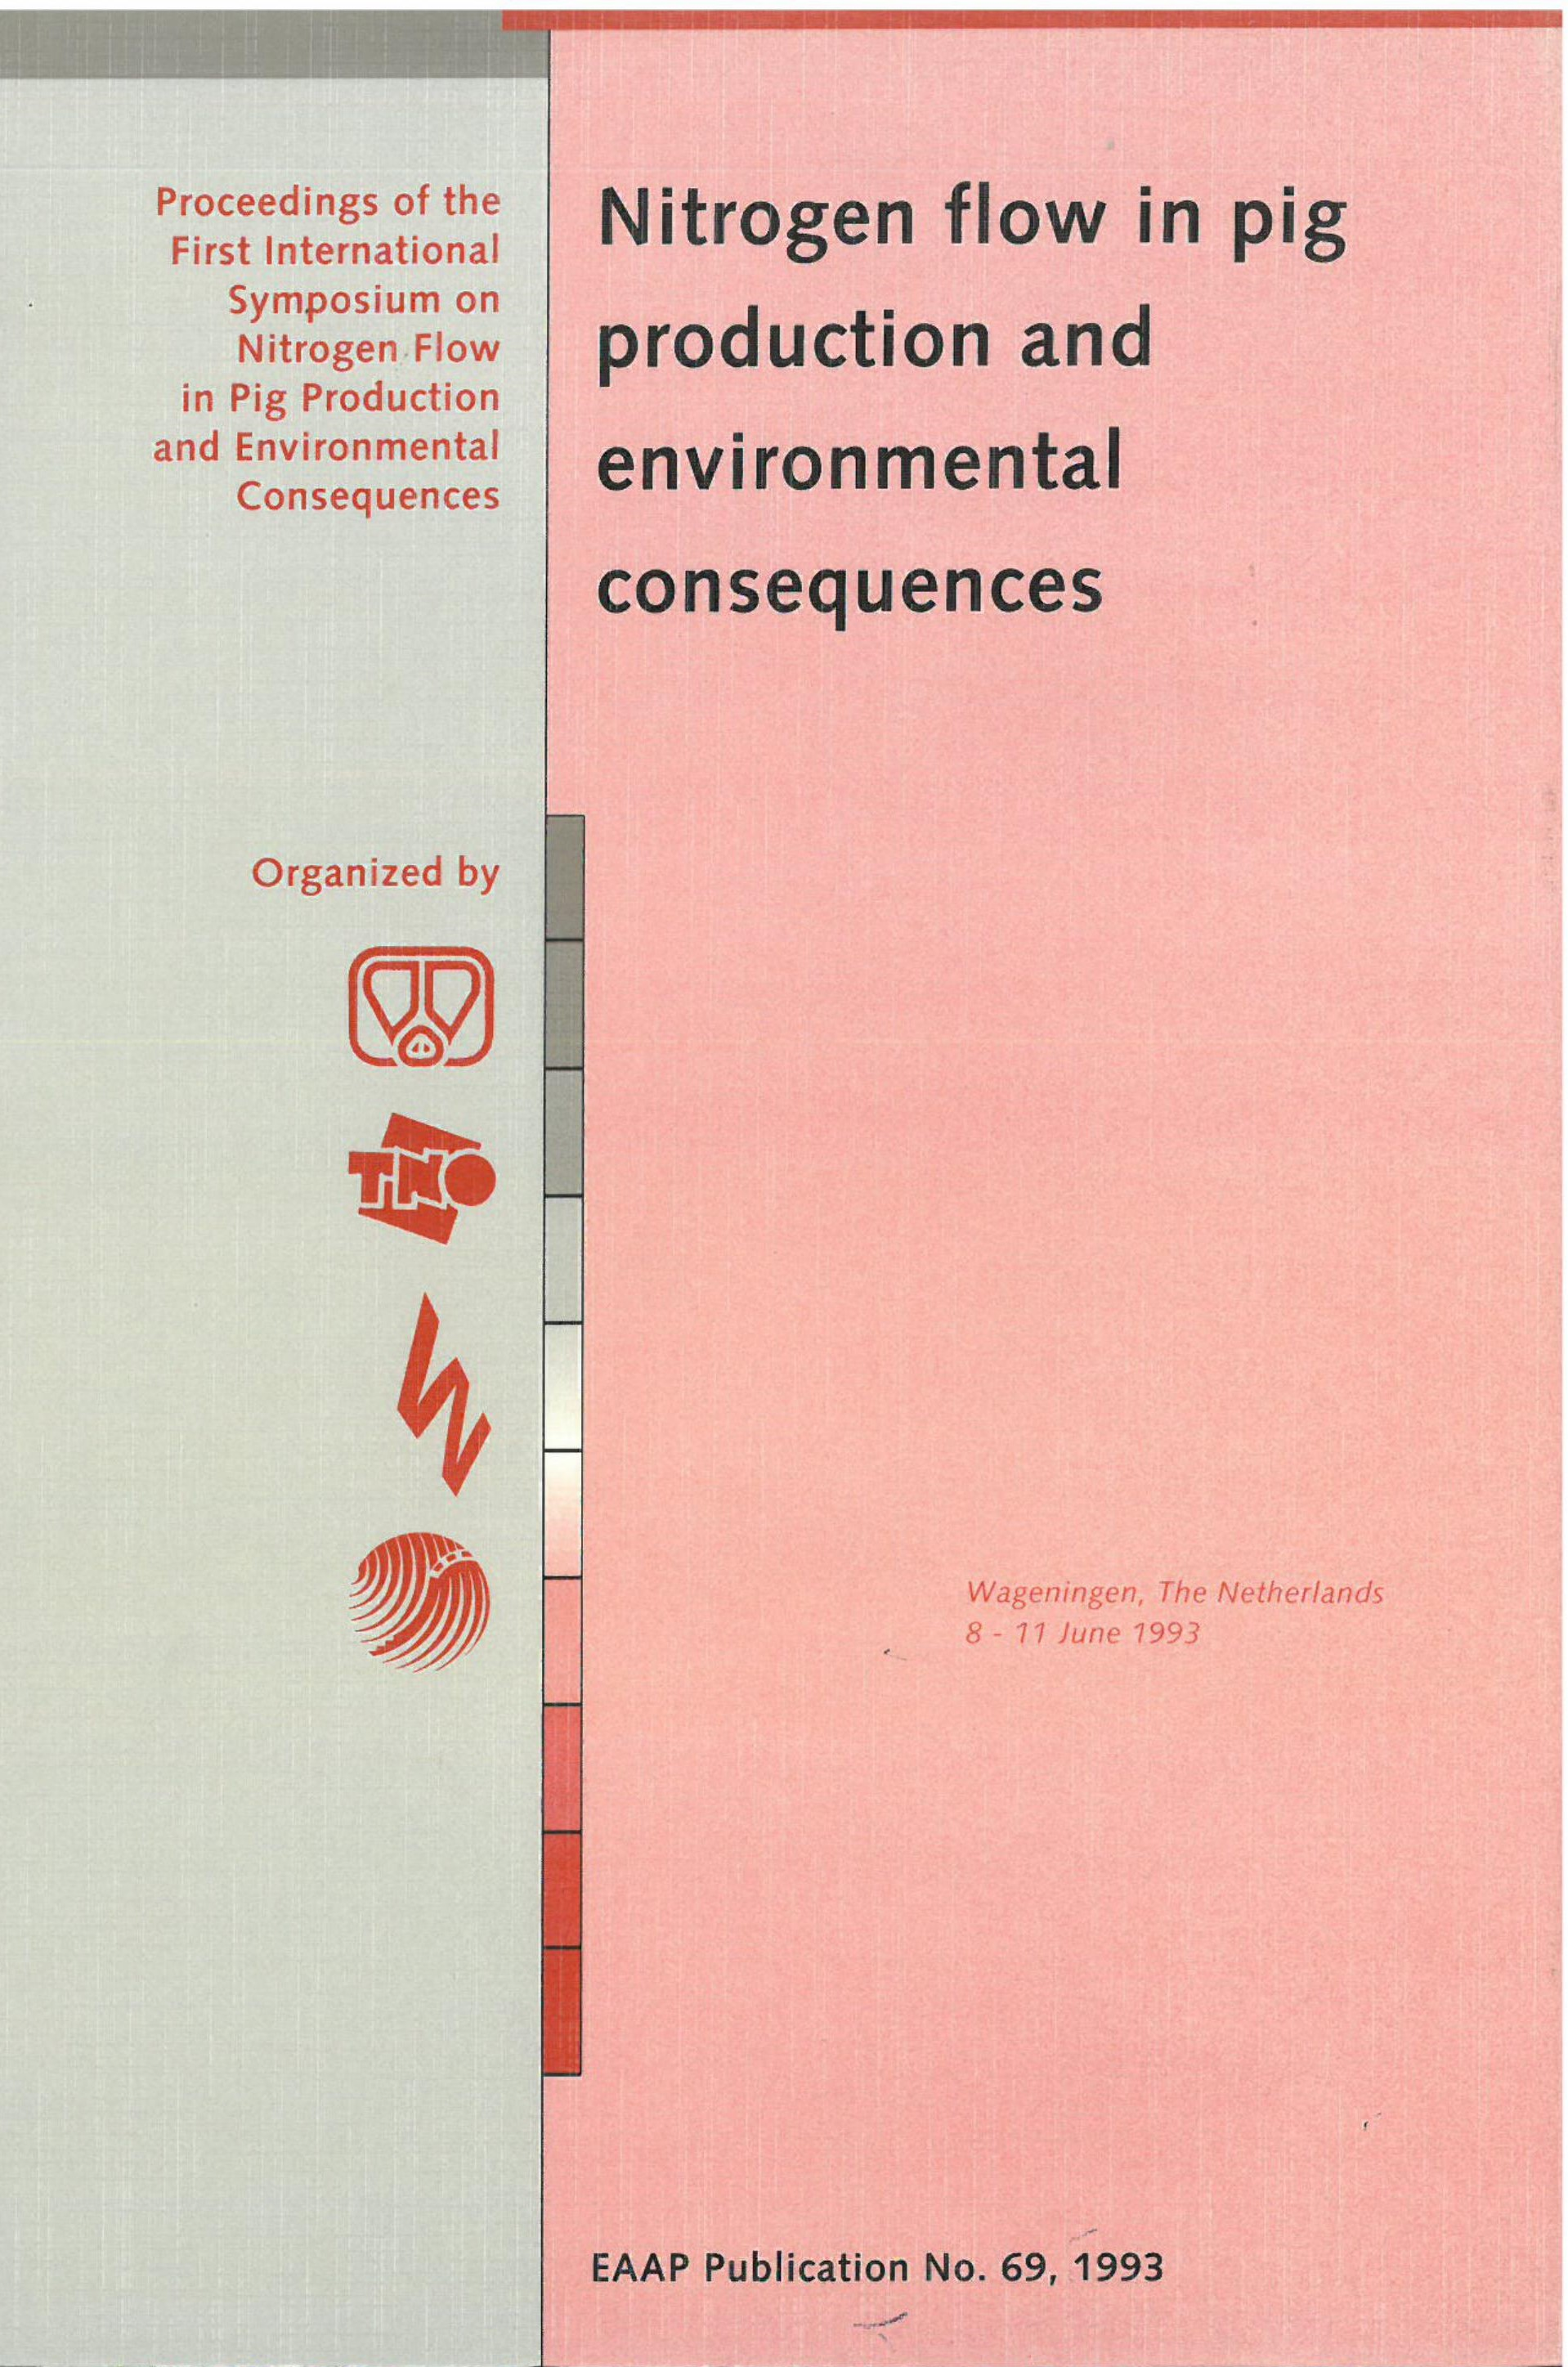 Nitrogen flow in pig production and environmental consequences